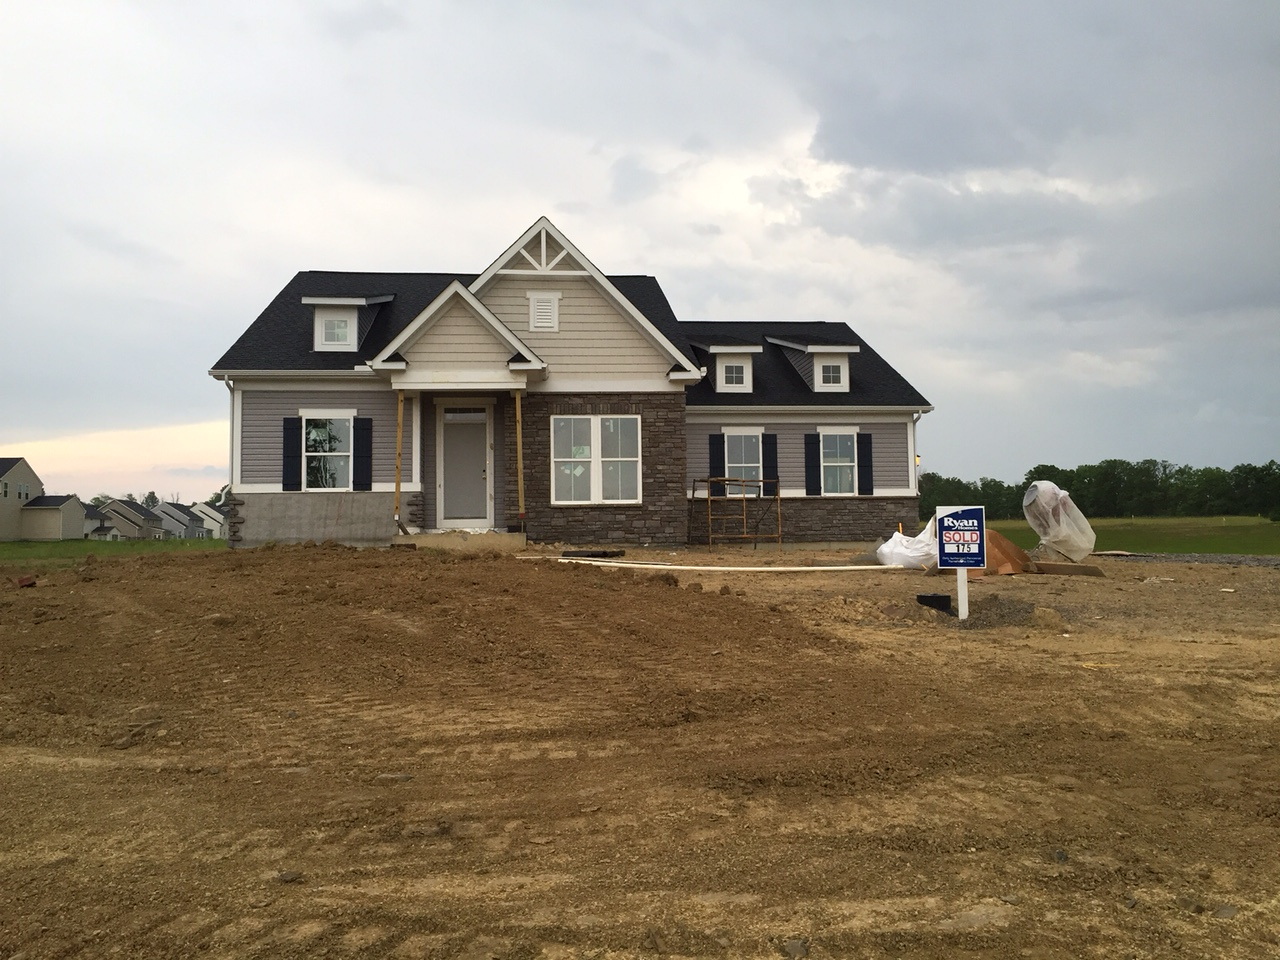 Our Winterbrook Journey with Ryan Homes on ryan homes house plans, dan ryan floor plans 2007, ryan homes dunkirk floor plans, ryan homes ranch floor plans, dan ryan sequoia floor plan, ryan townhomes floor plans, ryan homes models floor plans,